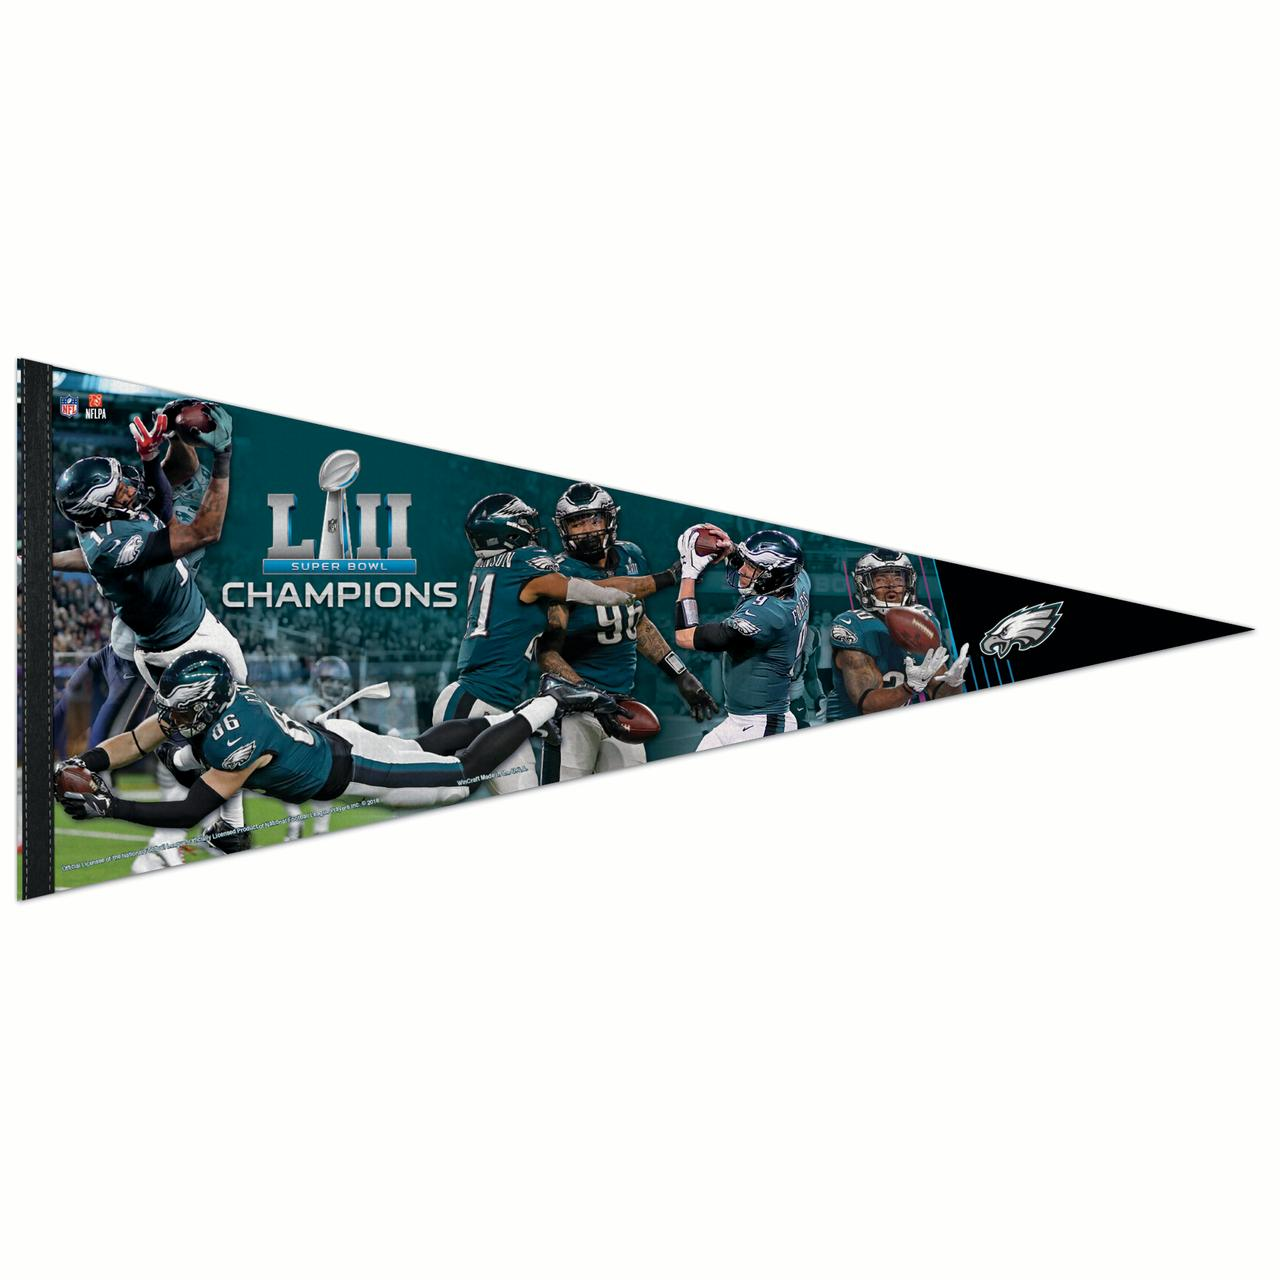 "Philadelphia Eagles WinCraft Super Bowl LII Champions 17"" x 40"" Players Premium Pennant - No Size"